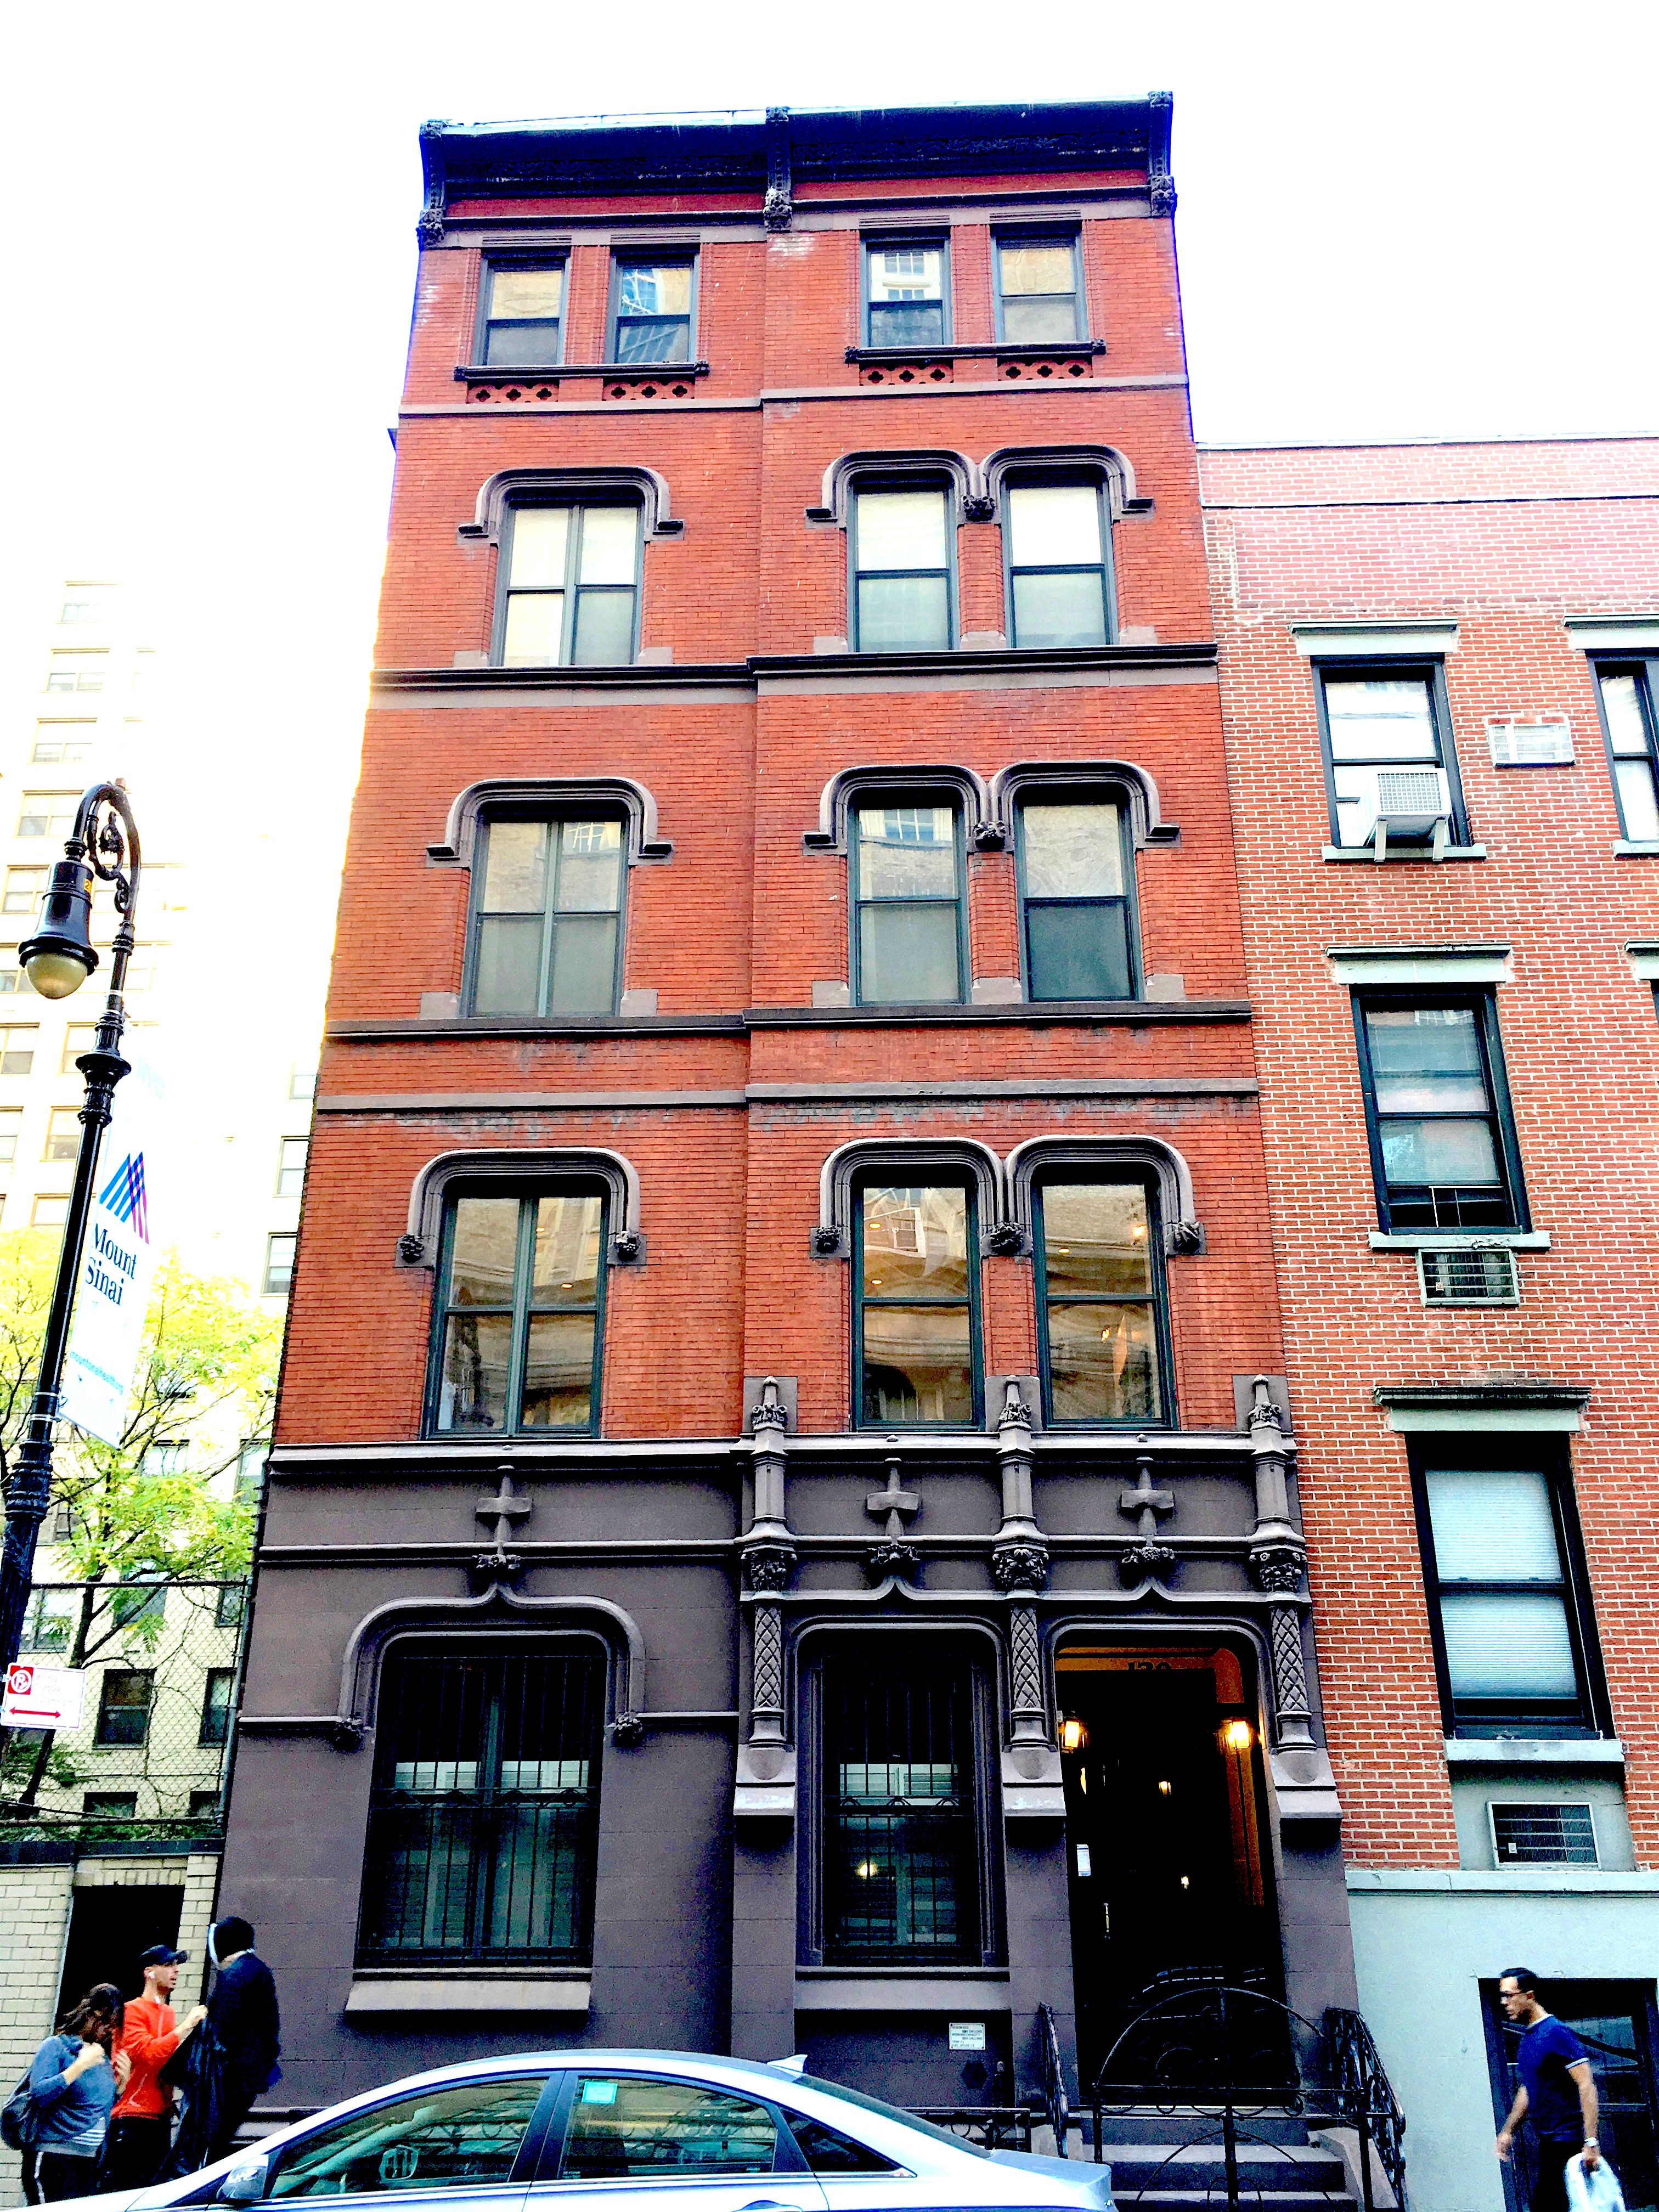 It S A Five Story Red Brick And Brownstone Jewel With French Gothic Touches At 129 East 17th Street Of Irving Place This Lovely Yet Unassuming Walkup